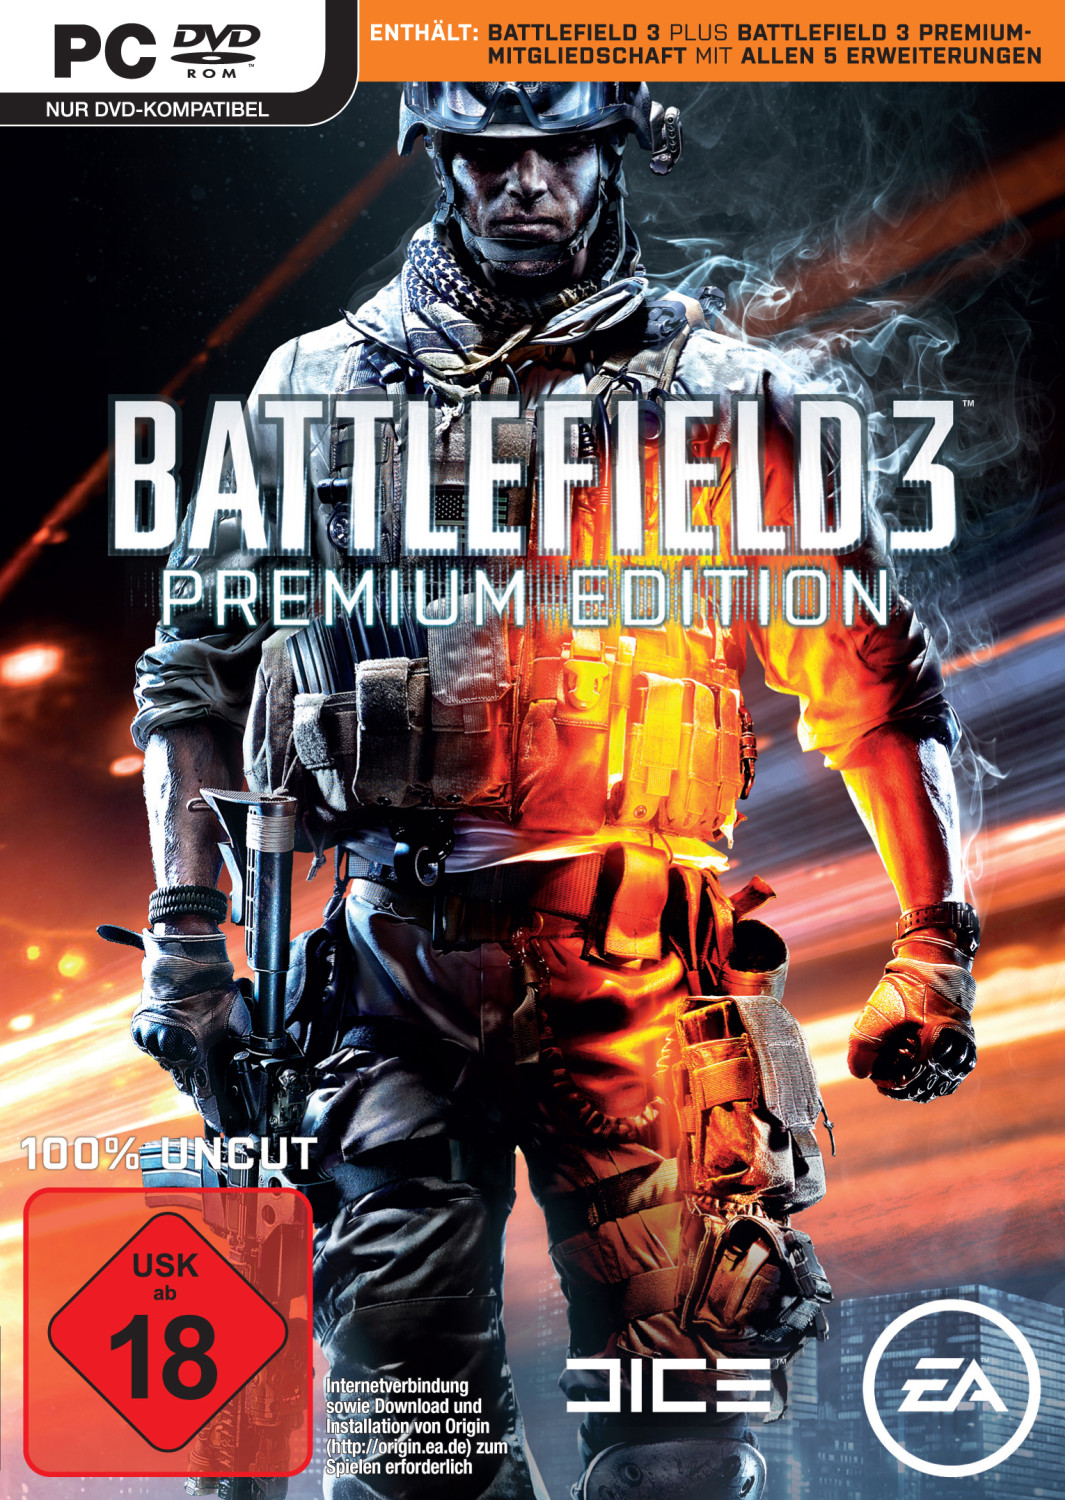 Battlefield 3: Premium Edition (PC)